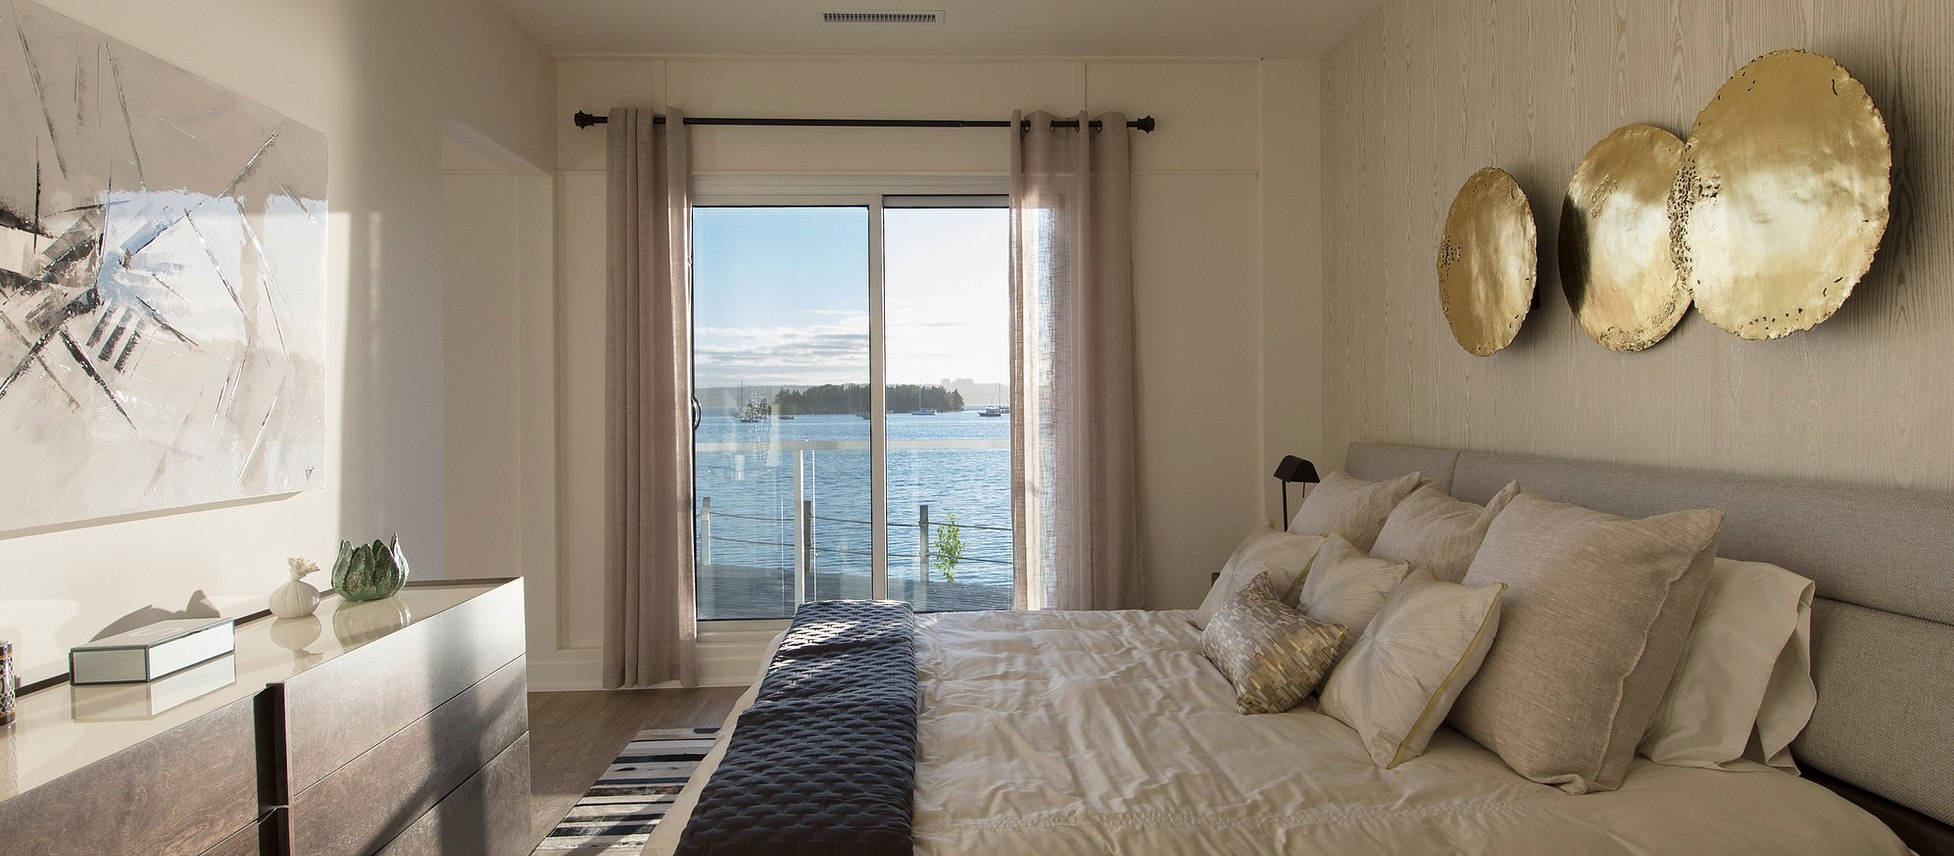 Seapoint_Bedroom